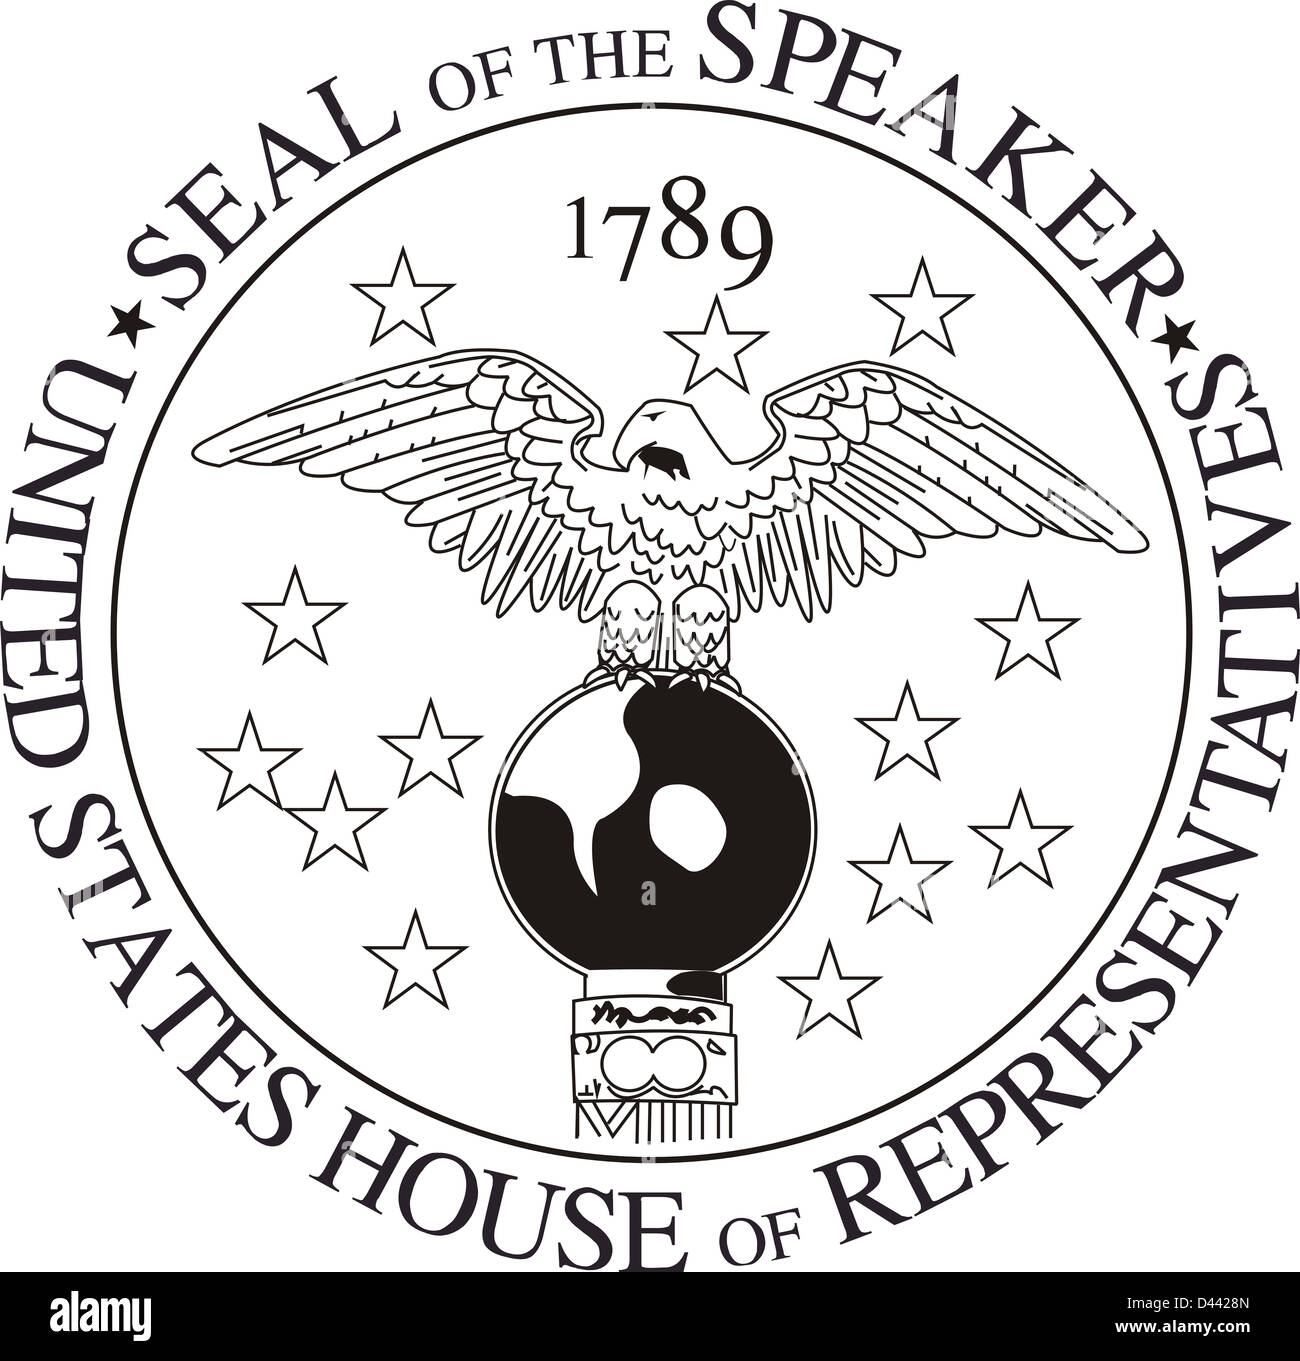 Speaker of the House seal United States House of Representatives